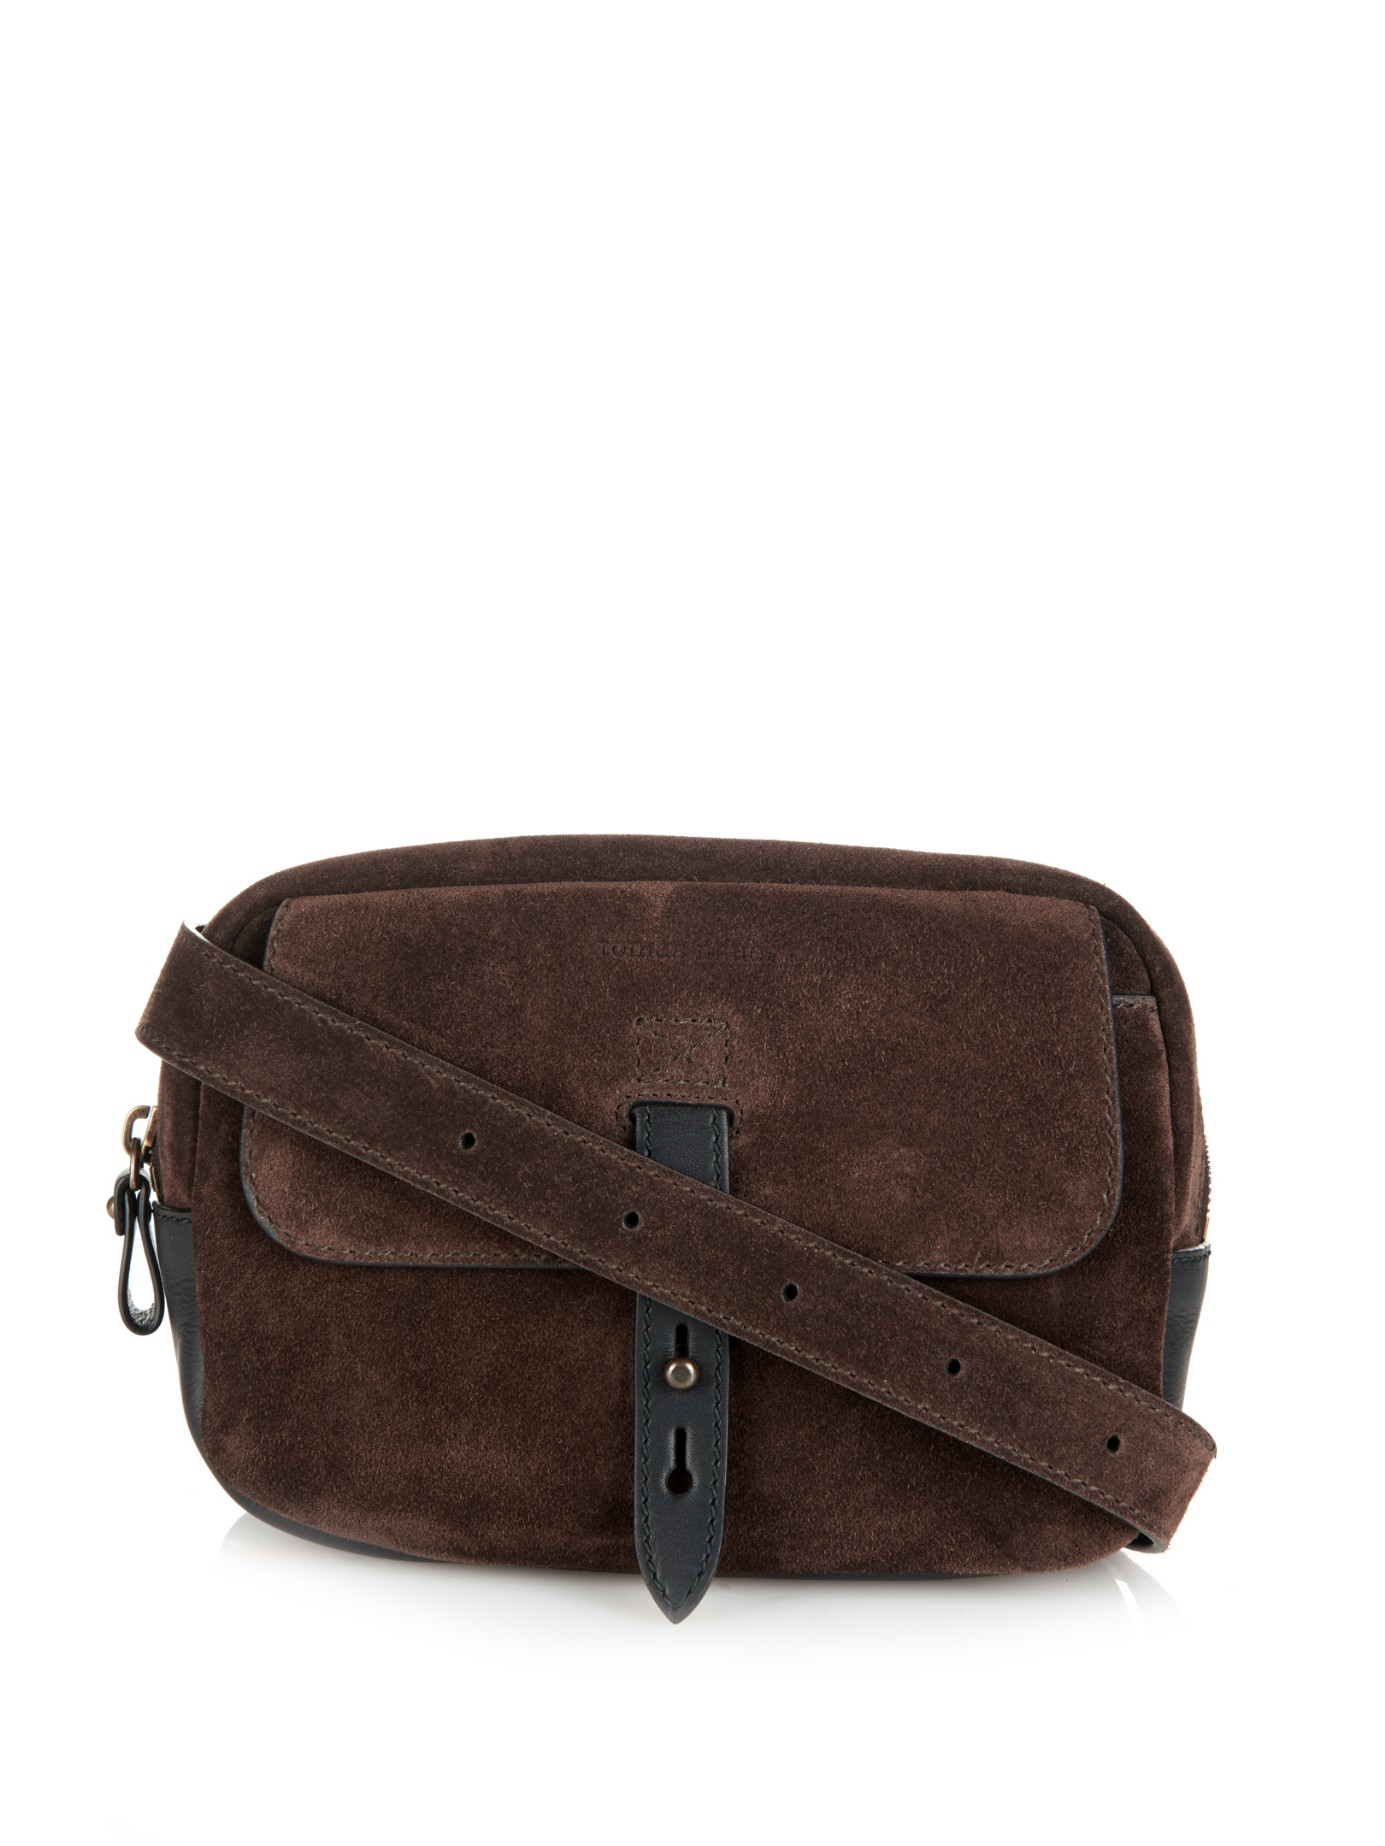 Tomas Maier Suede And Leather Belt Bag In Brown For Men Lyst